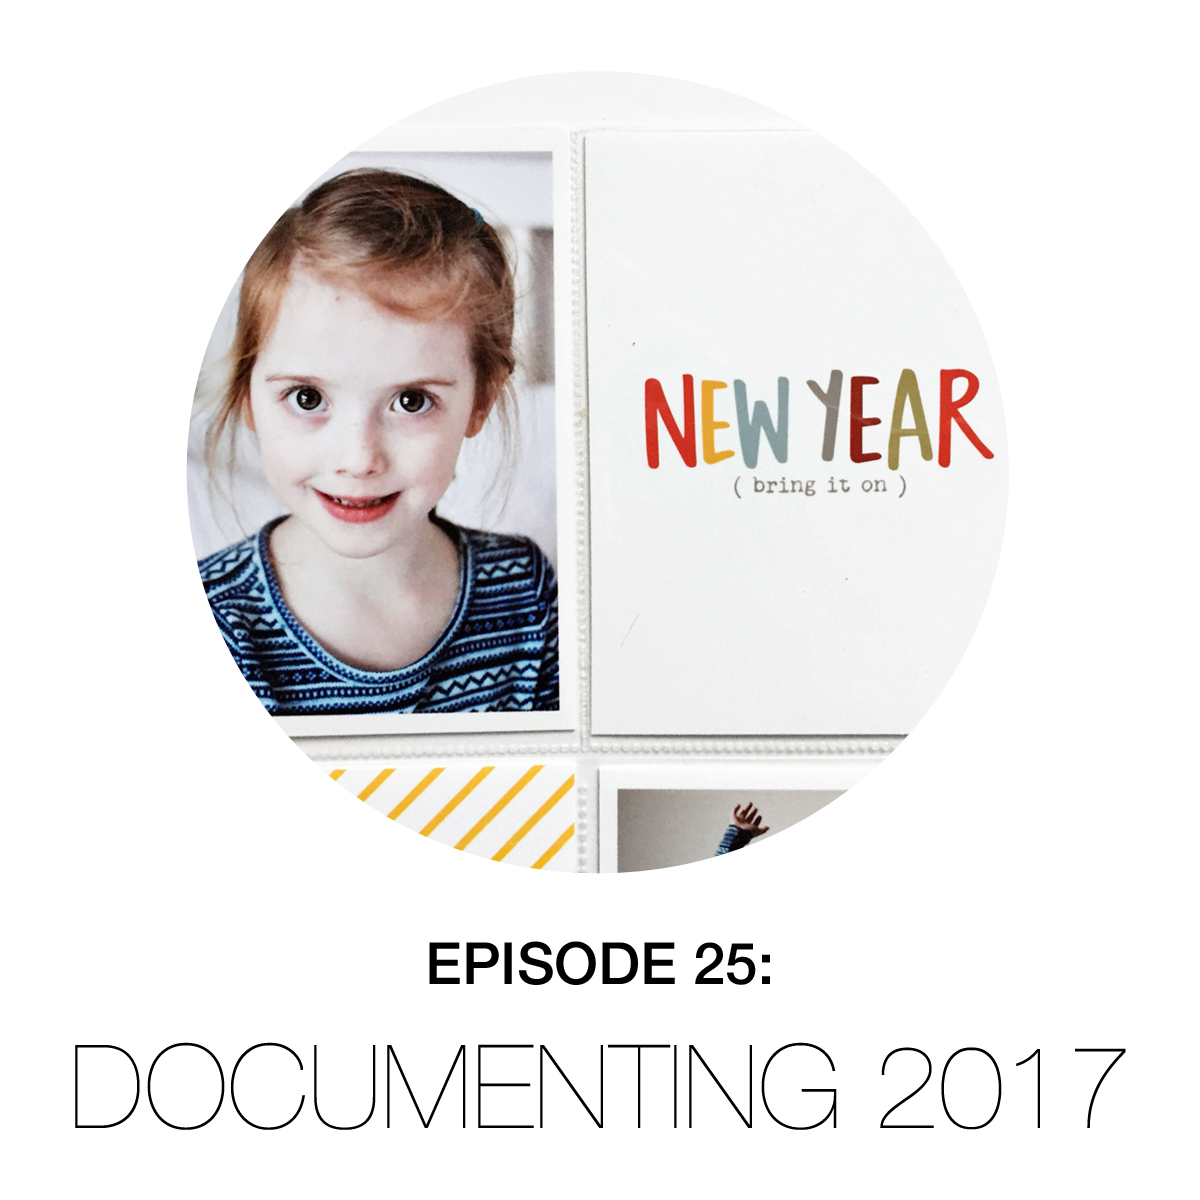 Episode 24 – Documenting 2017 Roundtable